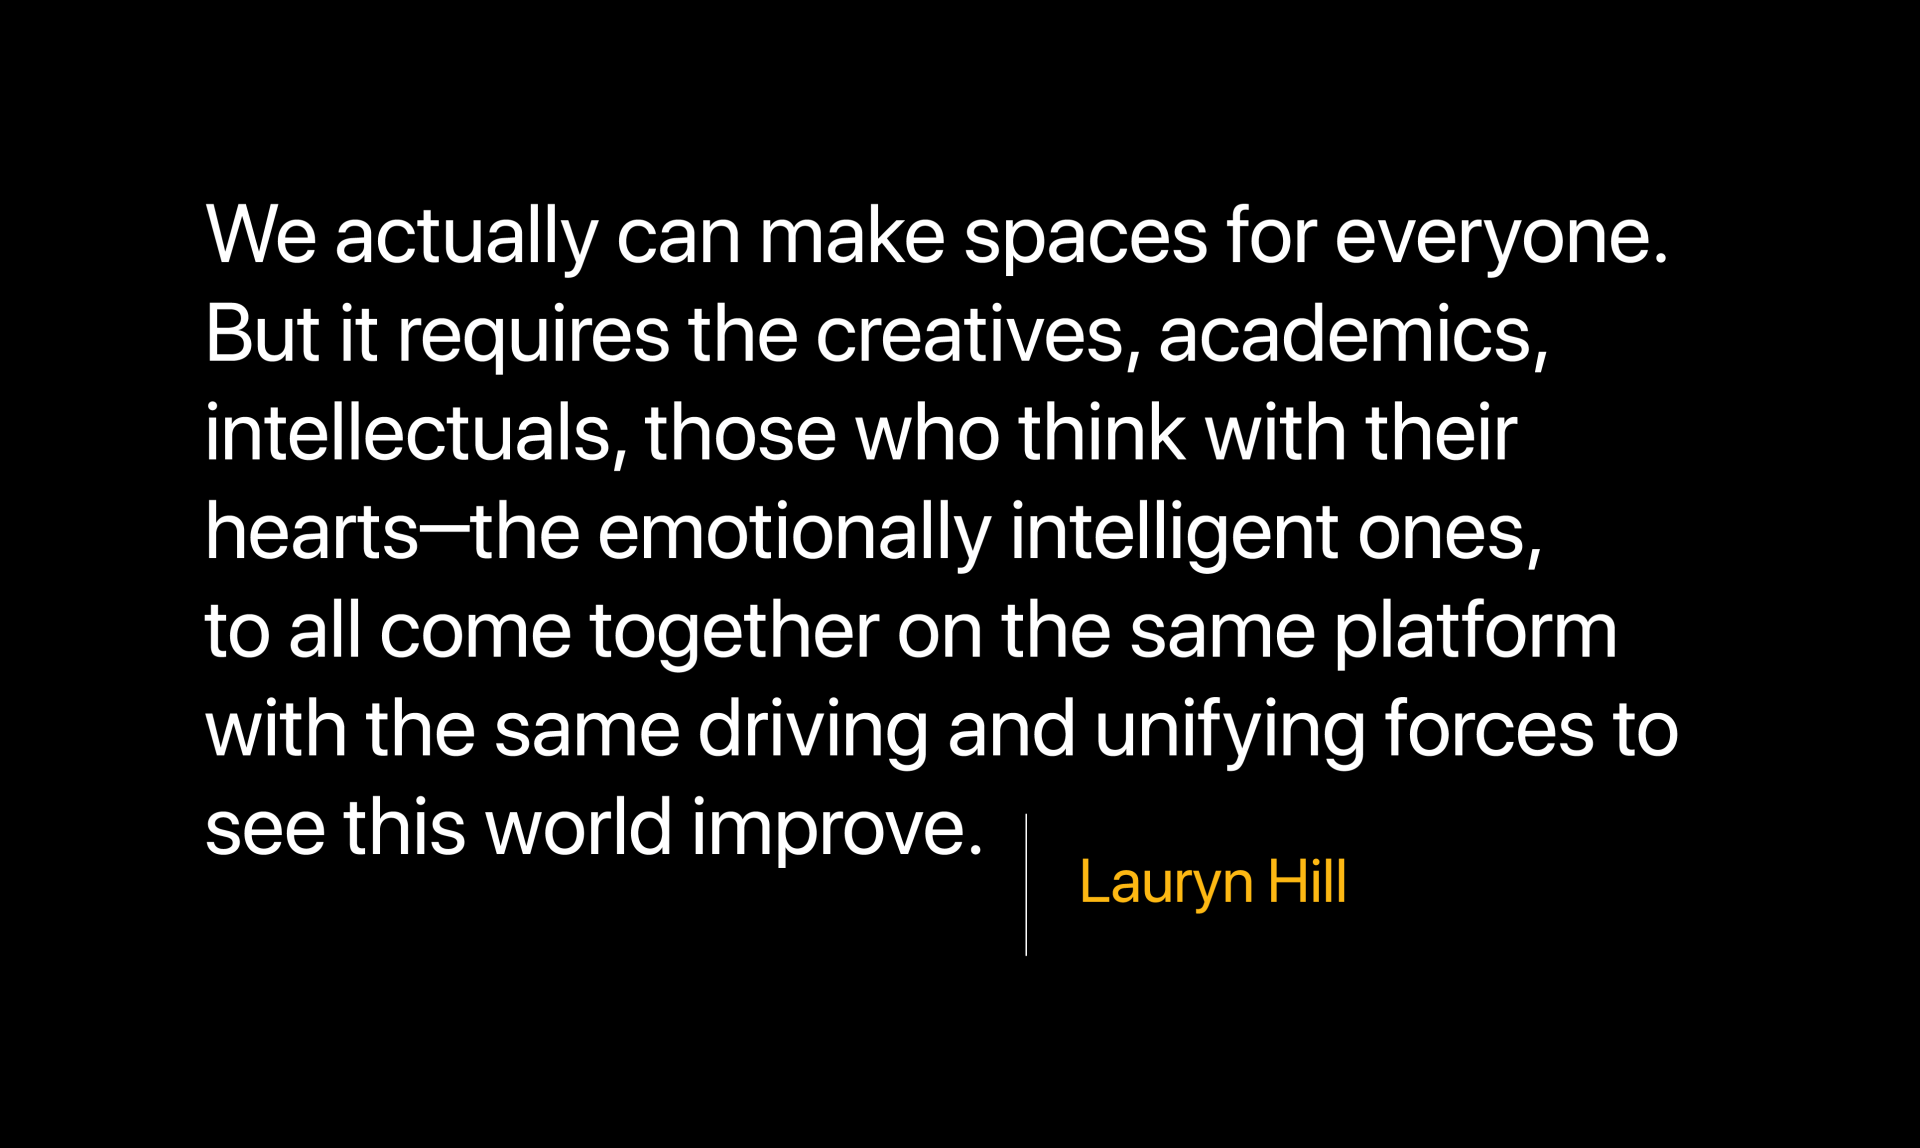 Lauryn Hill quote about creatives